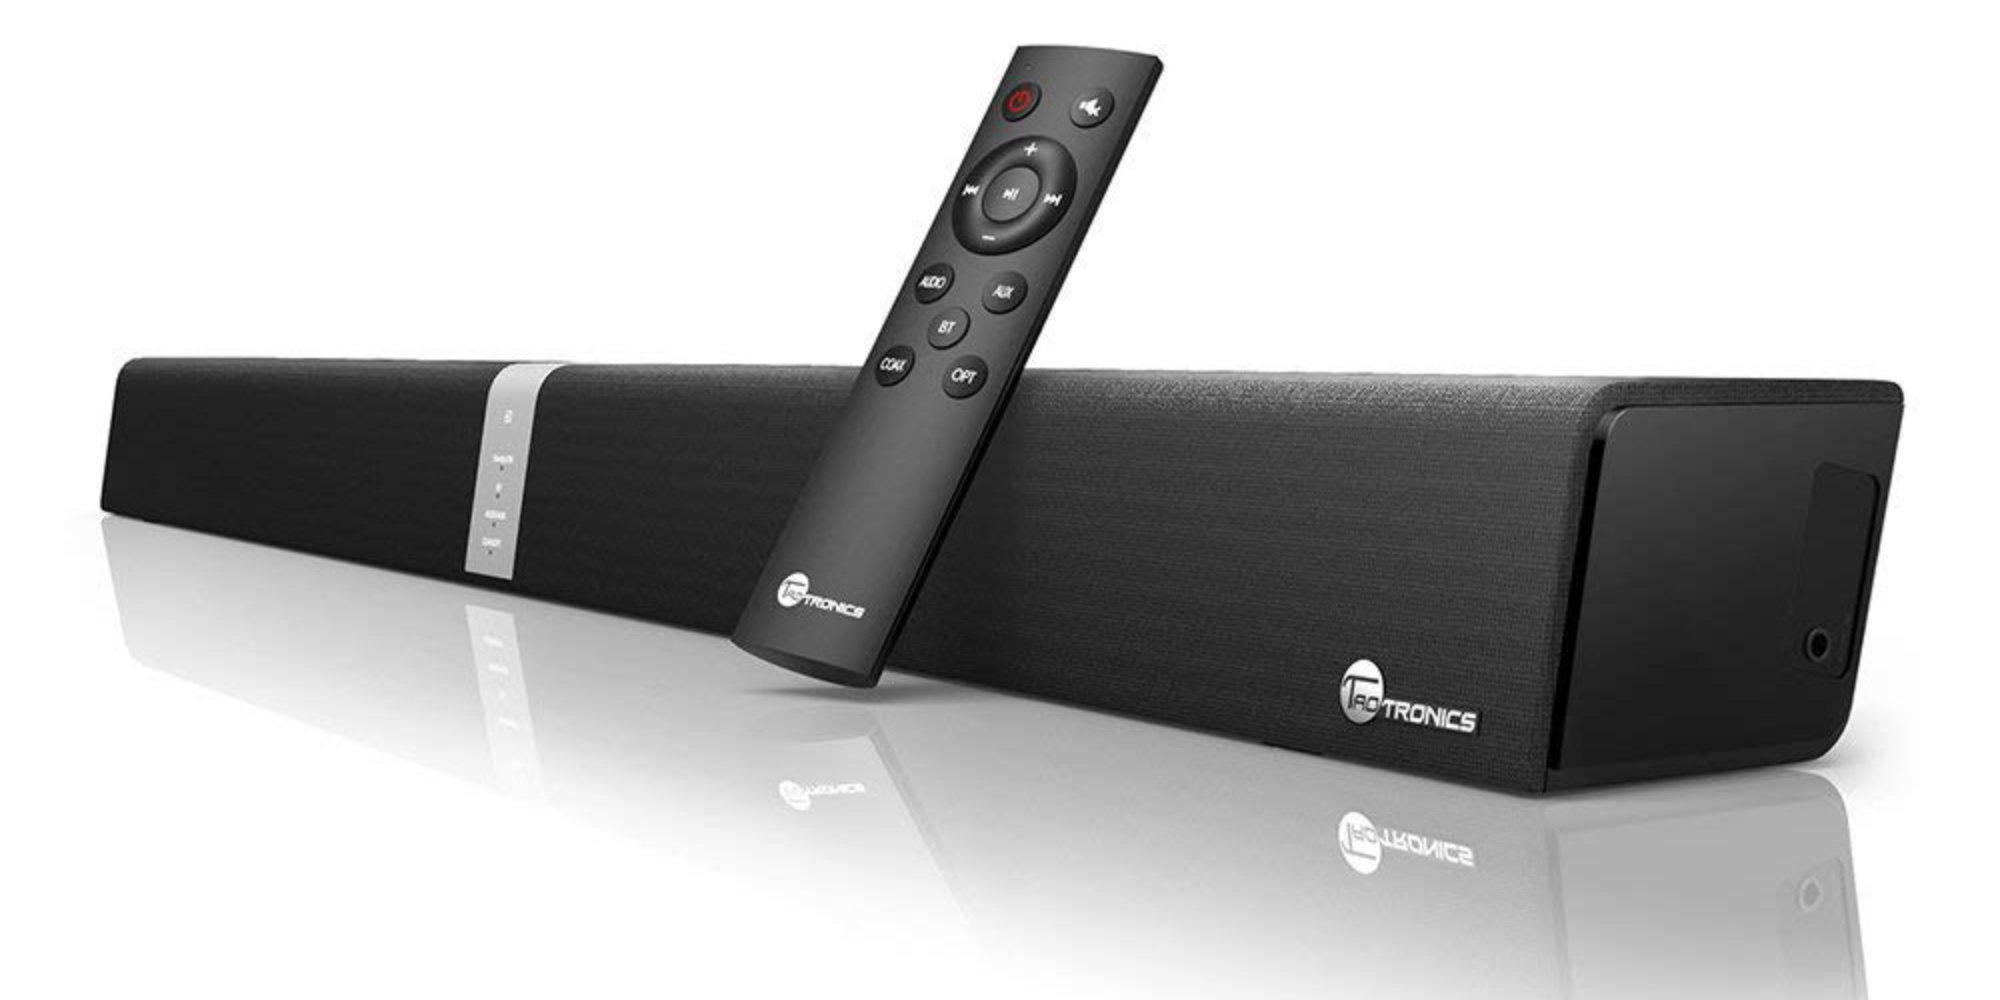 Upgrade your TV's audio w/ a TaoTronics 34-inch Bluetooth Sound Bar: $58 shipped (Reg. $80)